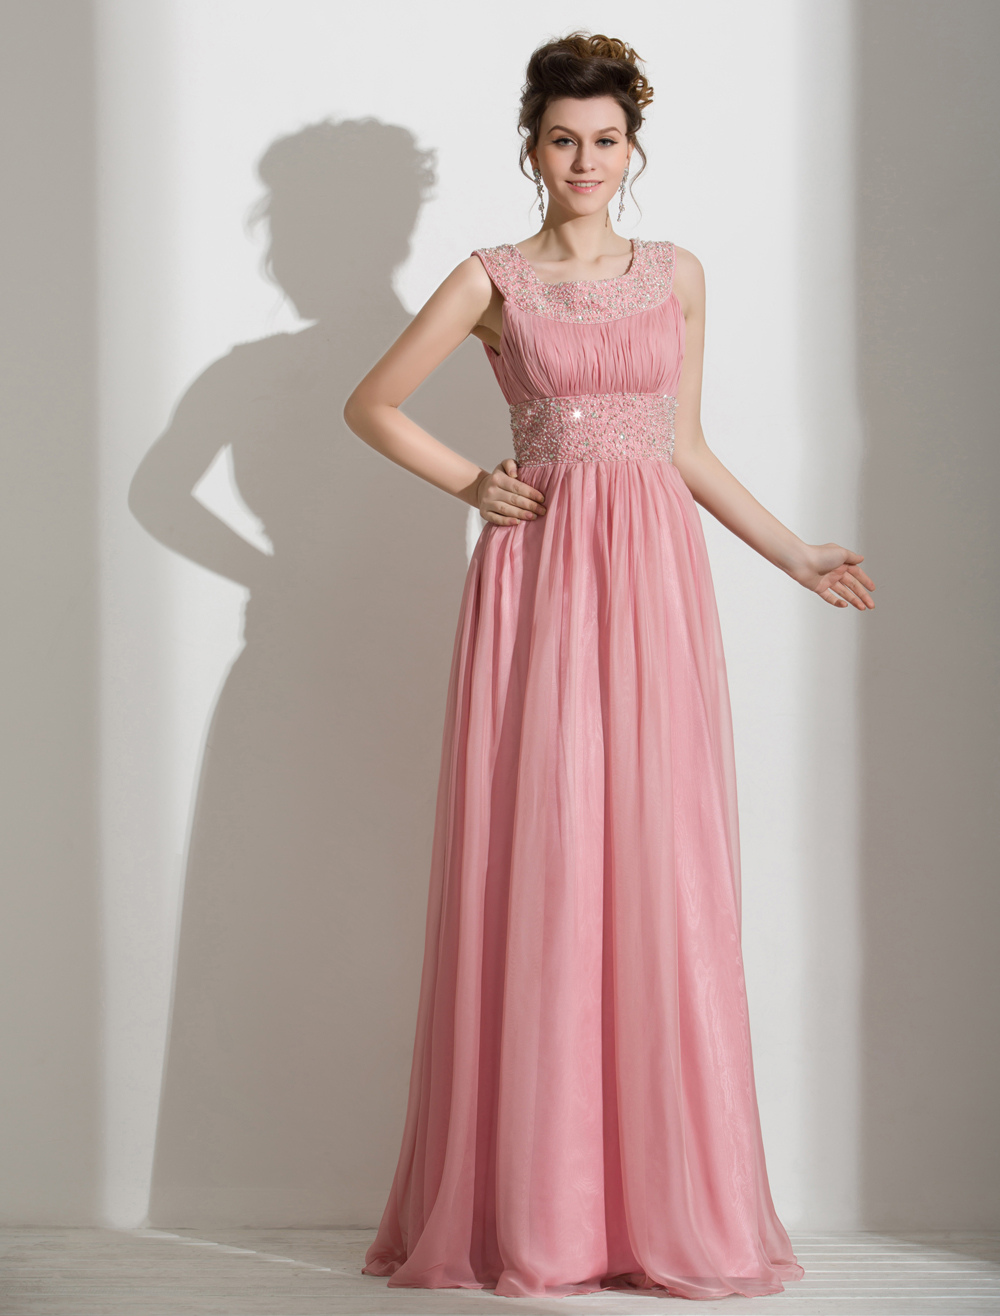 Romantic A-line Chiffon Beading Straps Neck Floor-Length Prom Dress